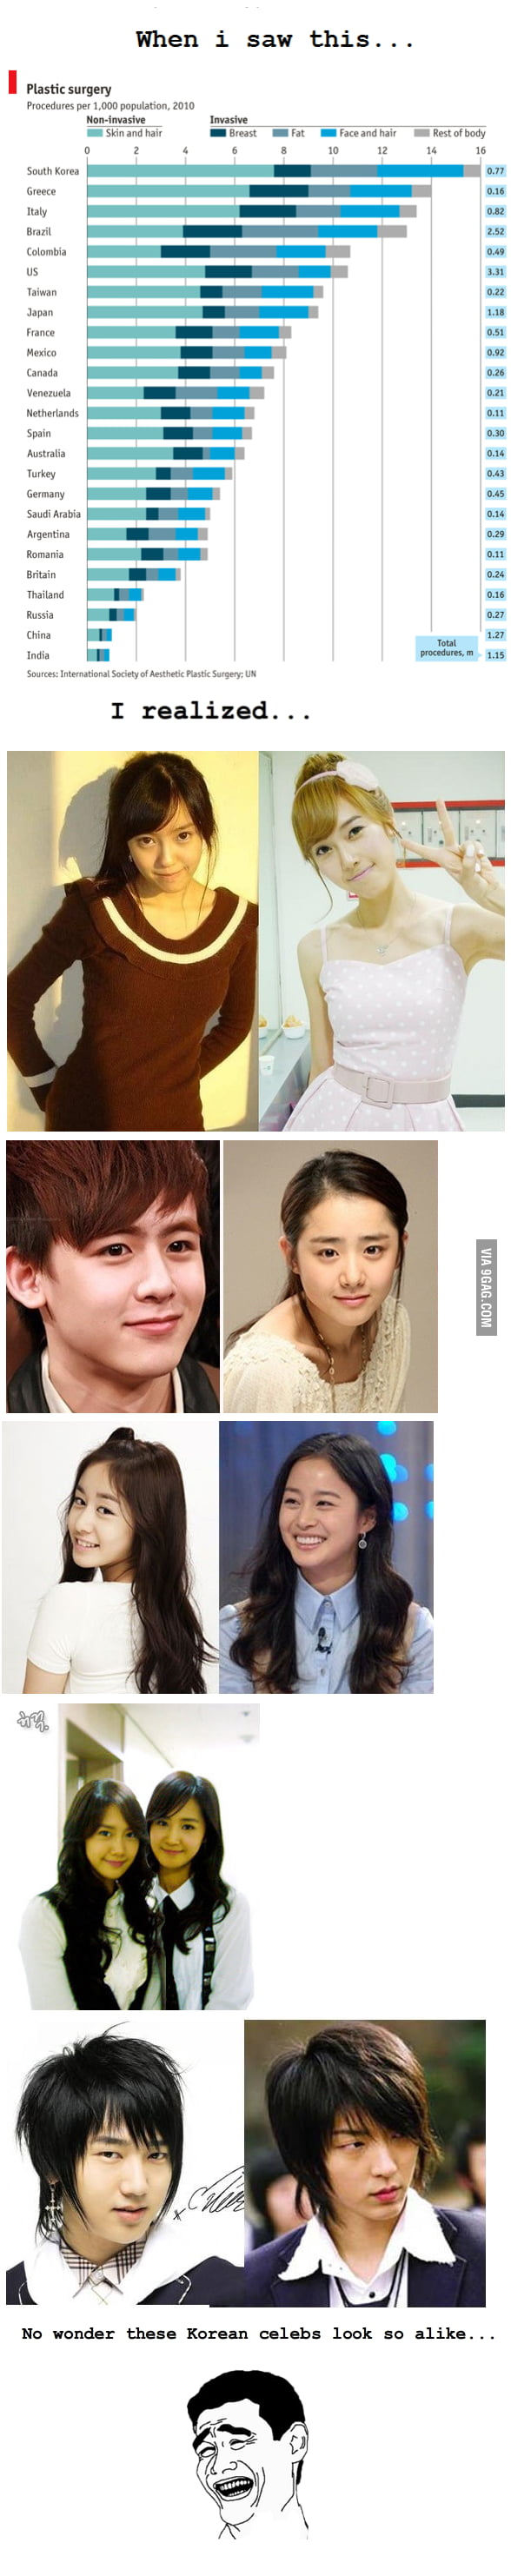 Clone Lvl: Korean